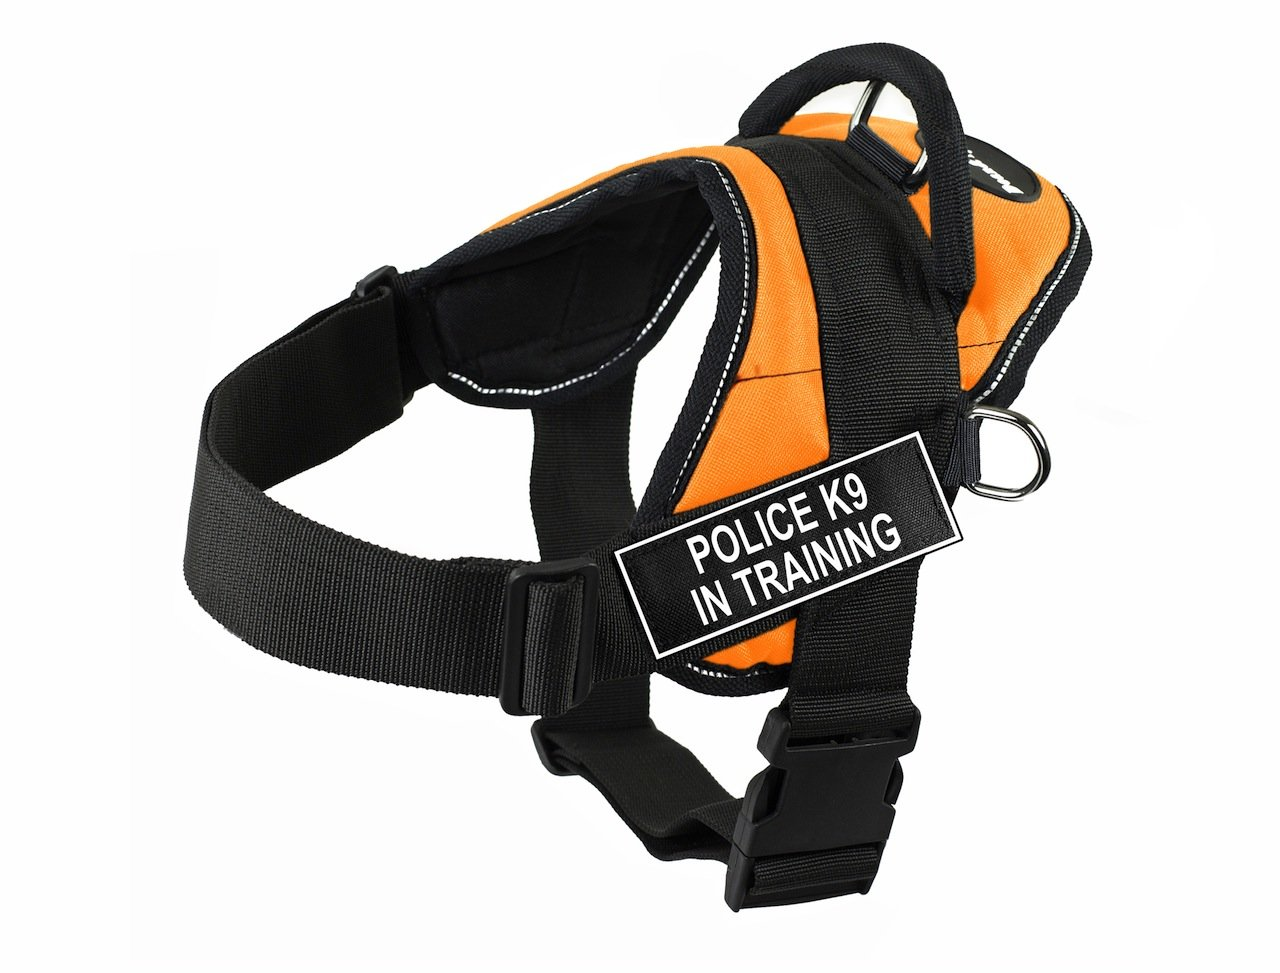 Dean & Tyler DT Fun Police K9 in Training Harness with Reflective Trim, XX-Small, orange